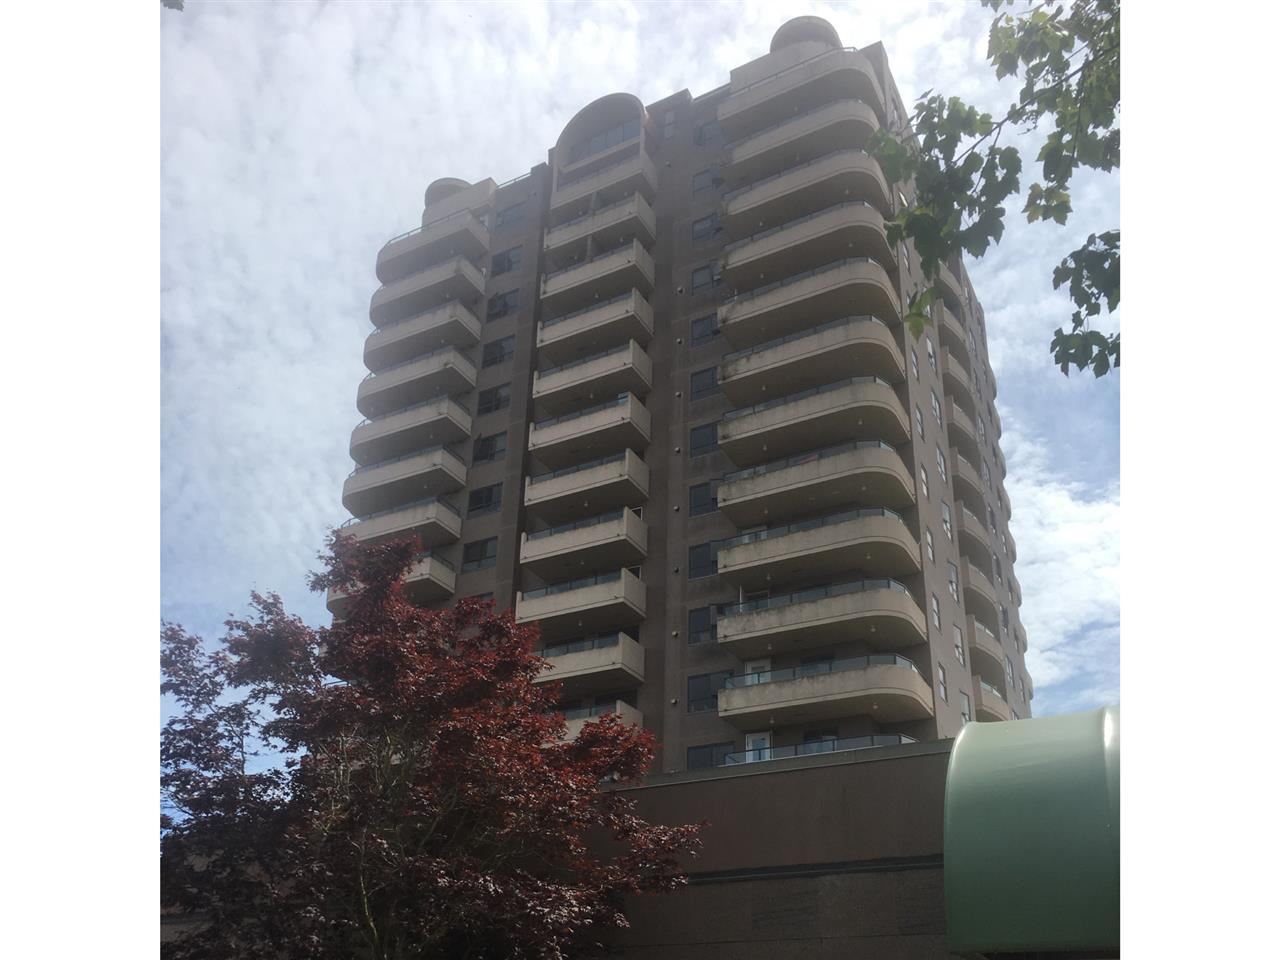 Condo Apartment at 904 6611 COONEY ROAD, Unit 904, Richmond, British Columbia. Image 1